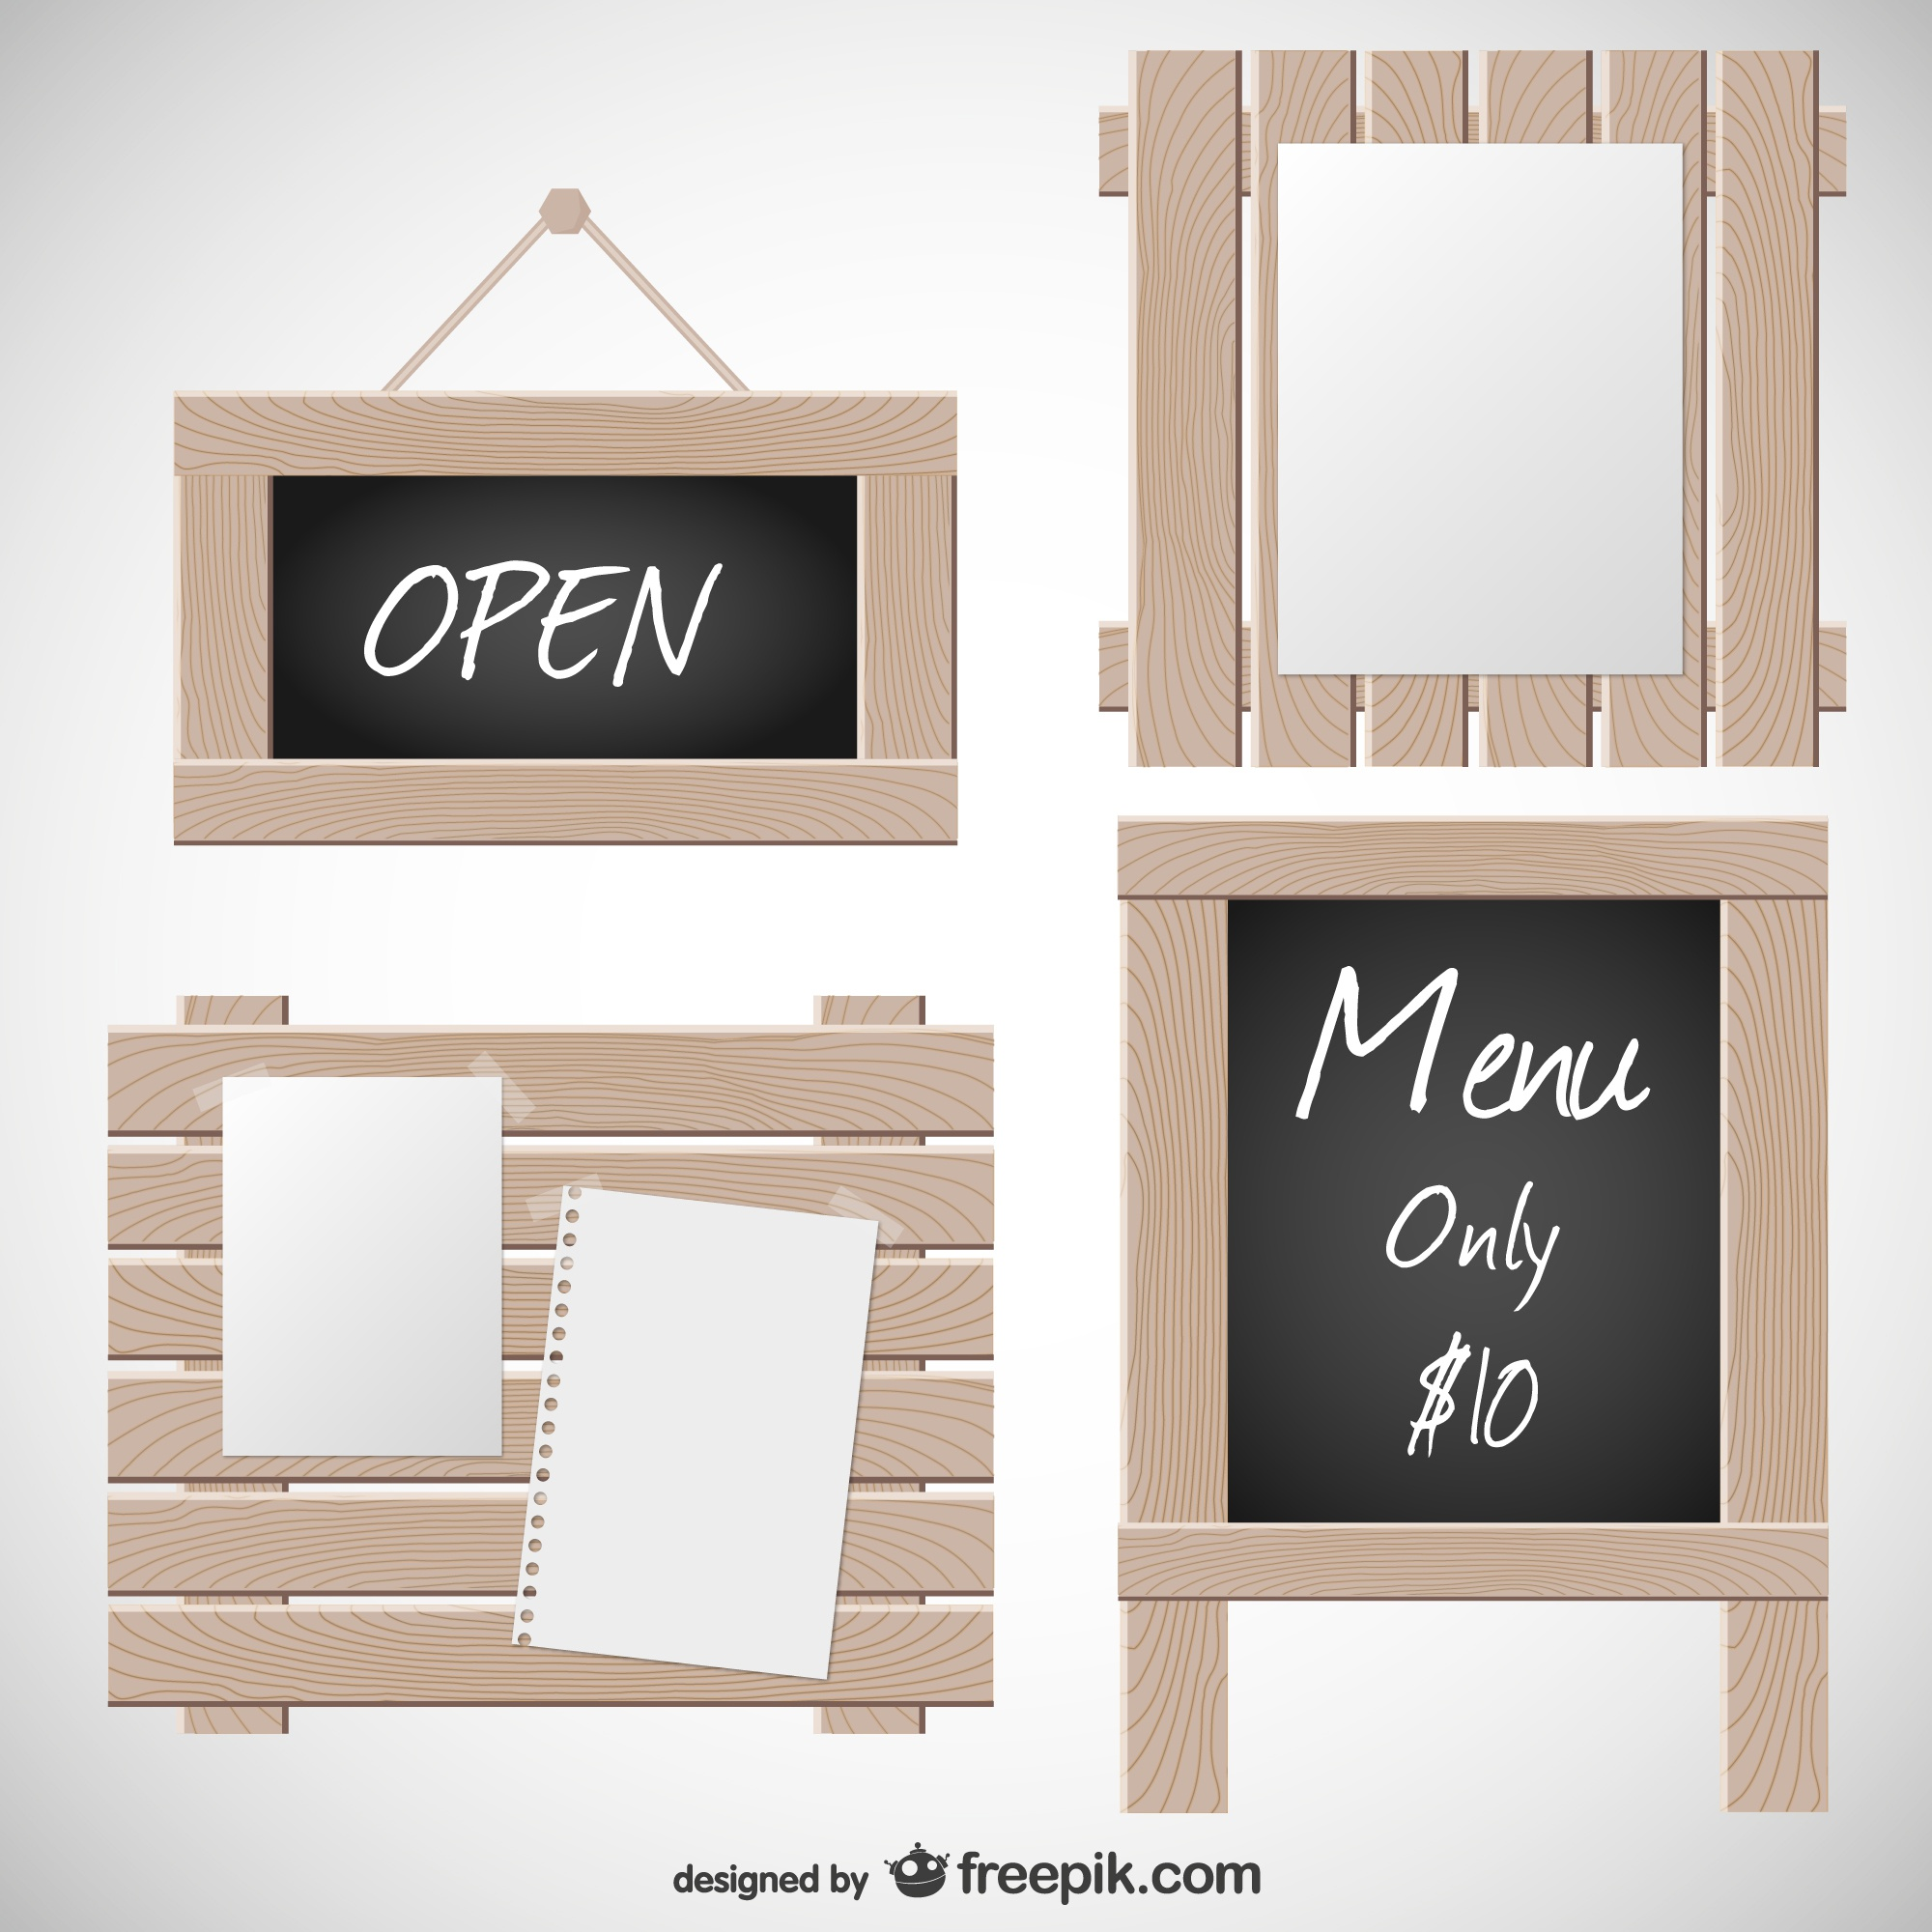 Wooden and blackboard signs